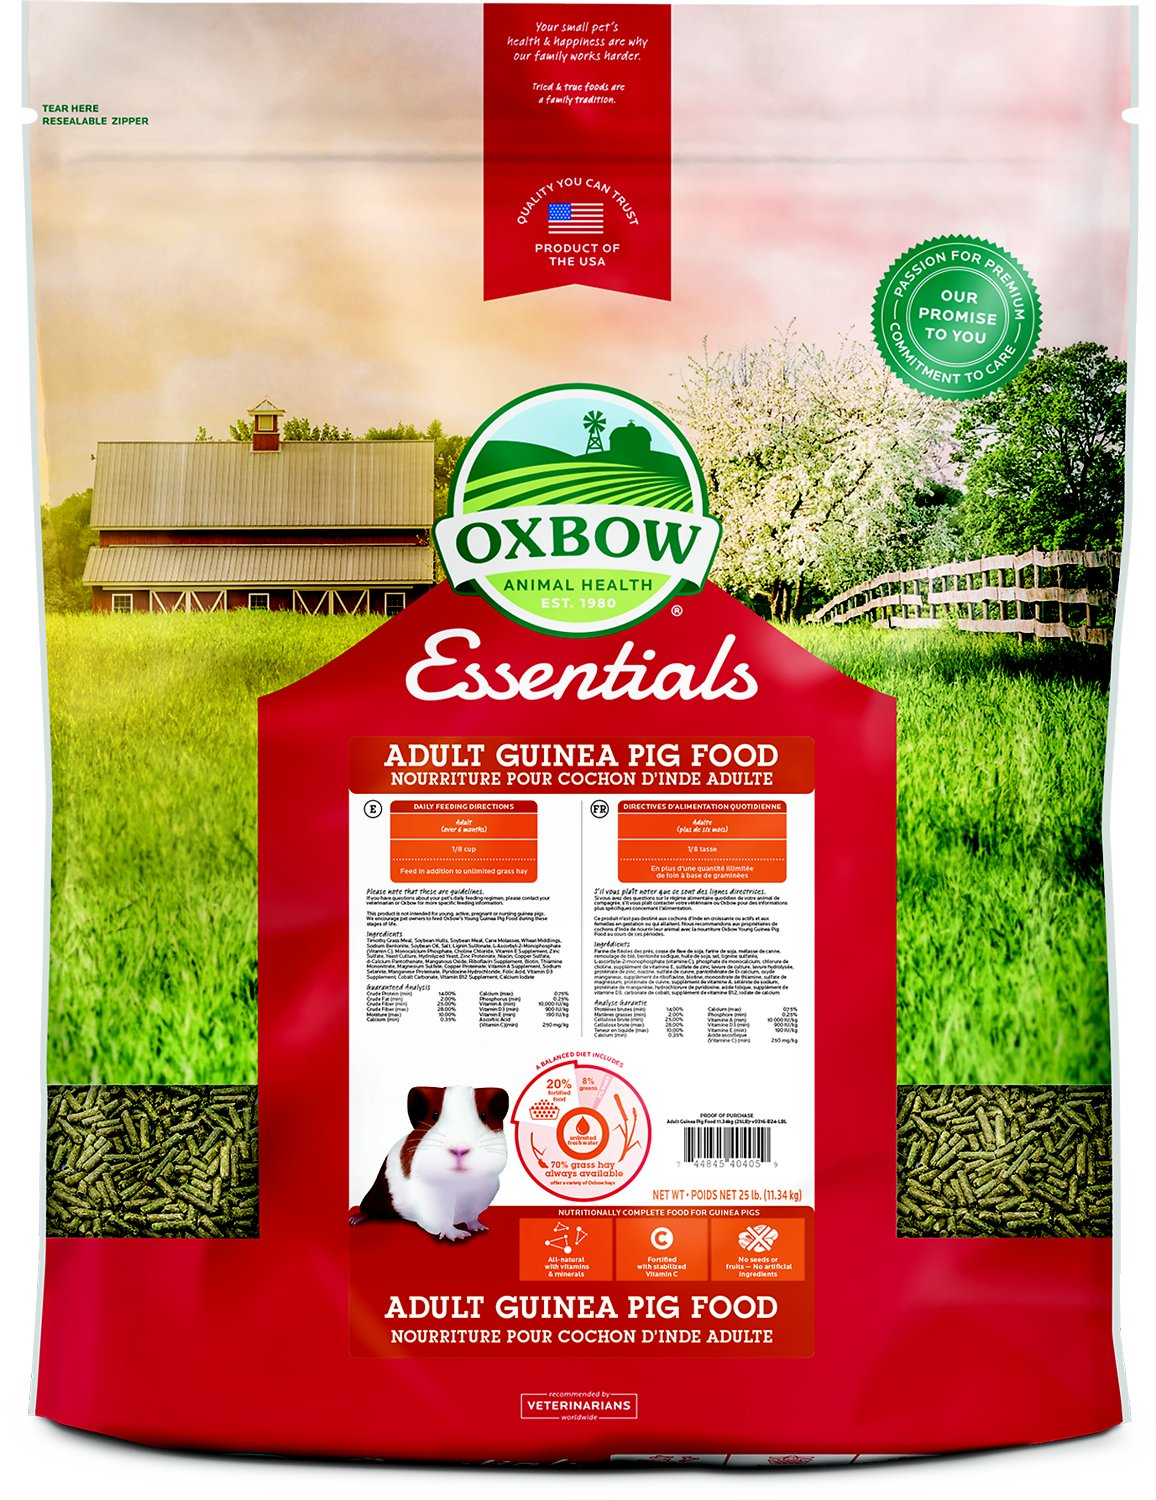 Oxbow Essentials Cavy Cuisine Adult Guinea Pig Food Image